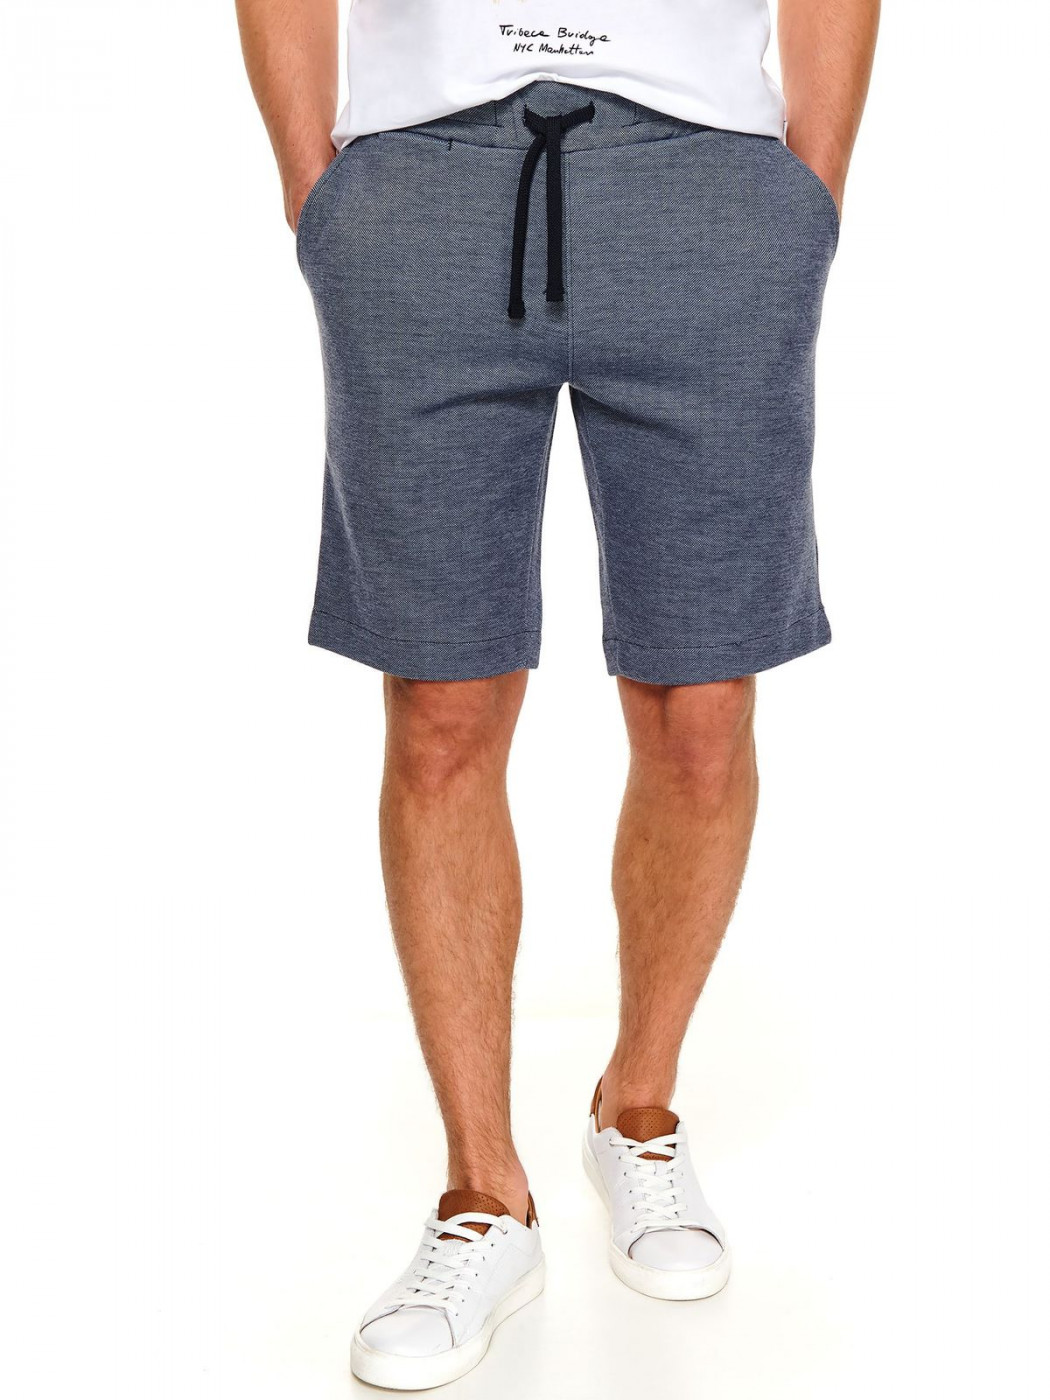 Men's shorts Top Secret .